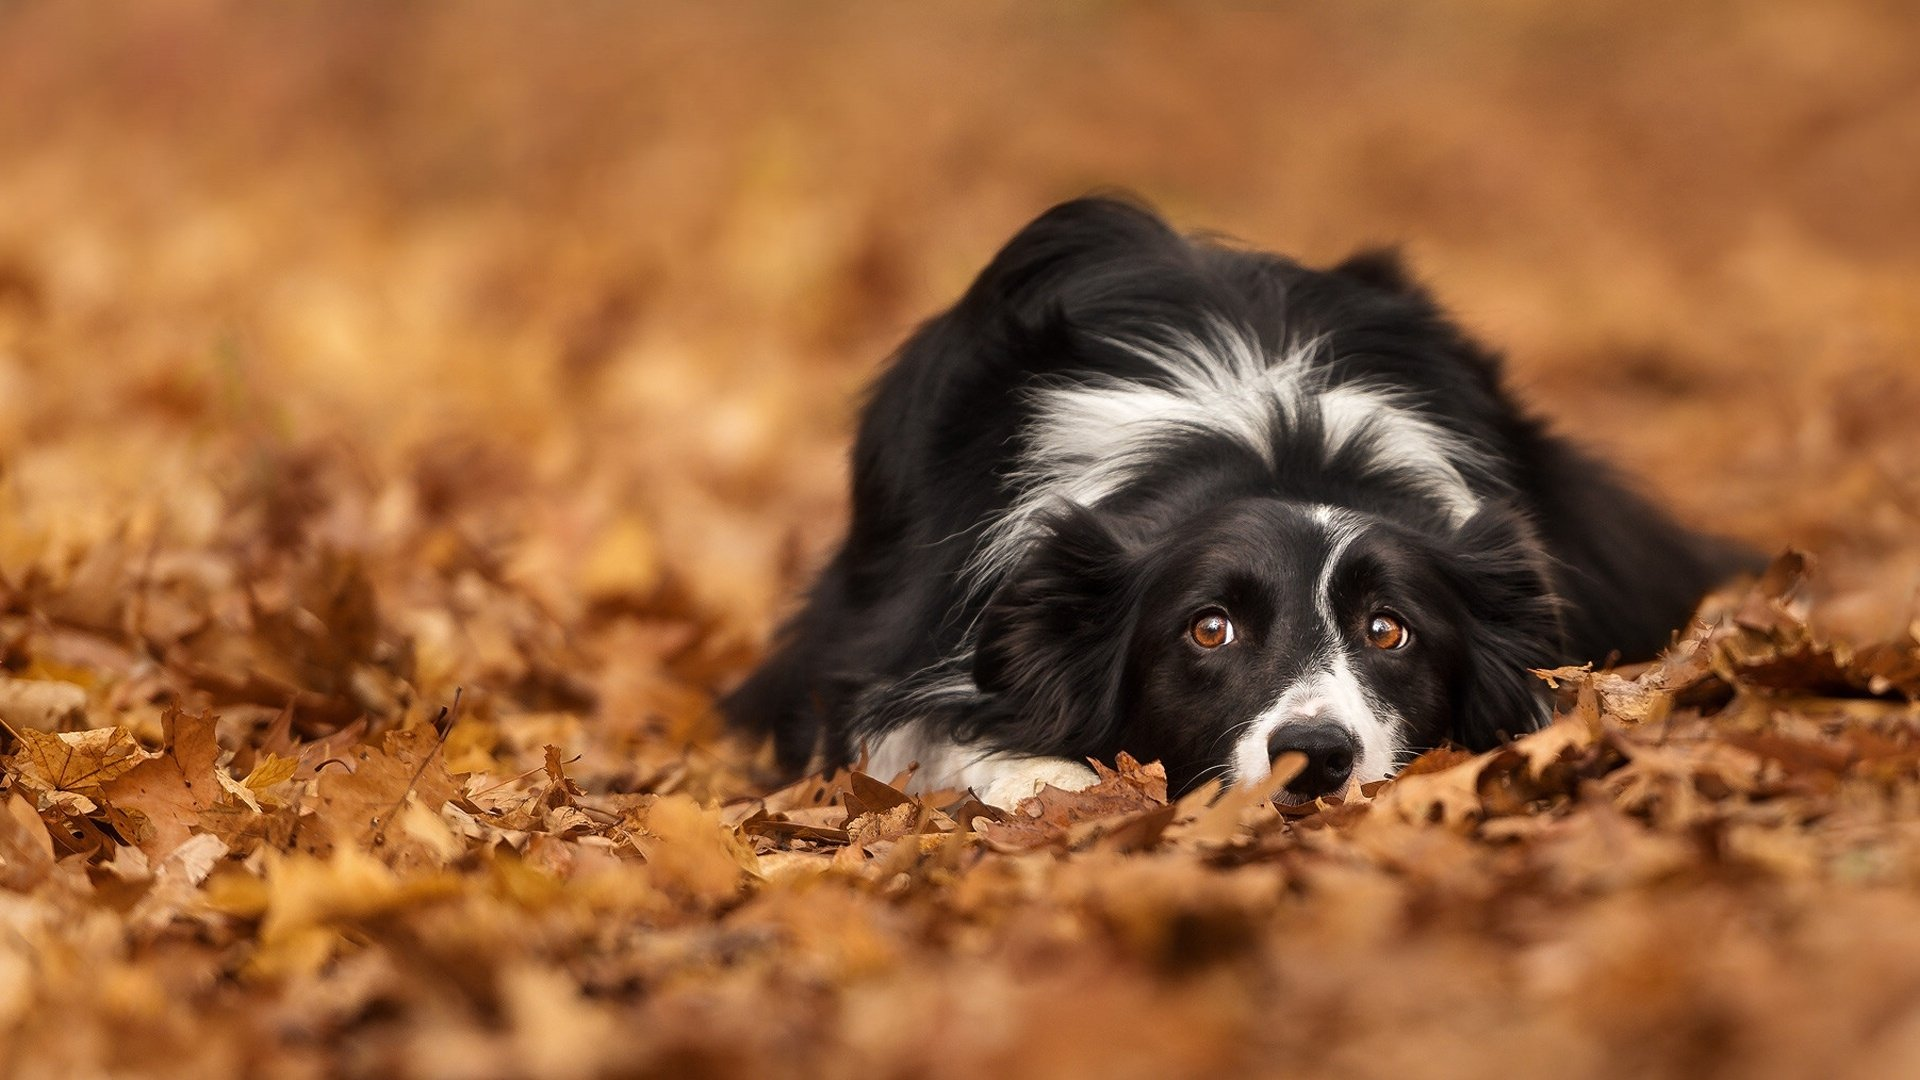 Fall Leaves Iphone 6 Plus Wallpaper Border Collie Hd Wallpaper Background Image 1920x1080